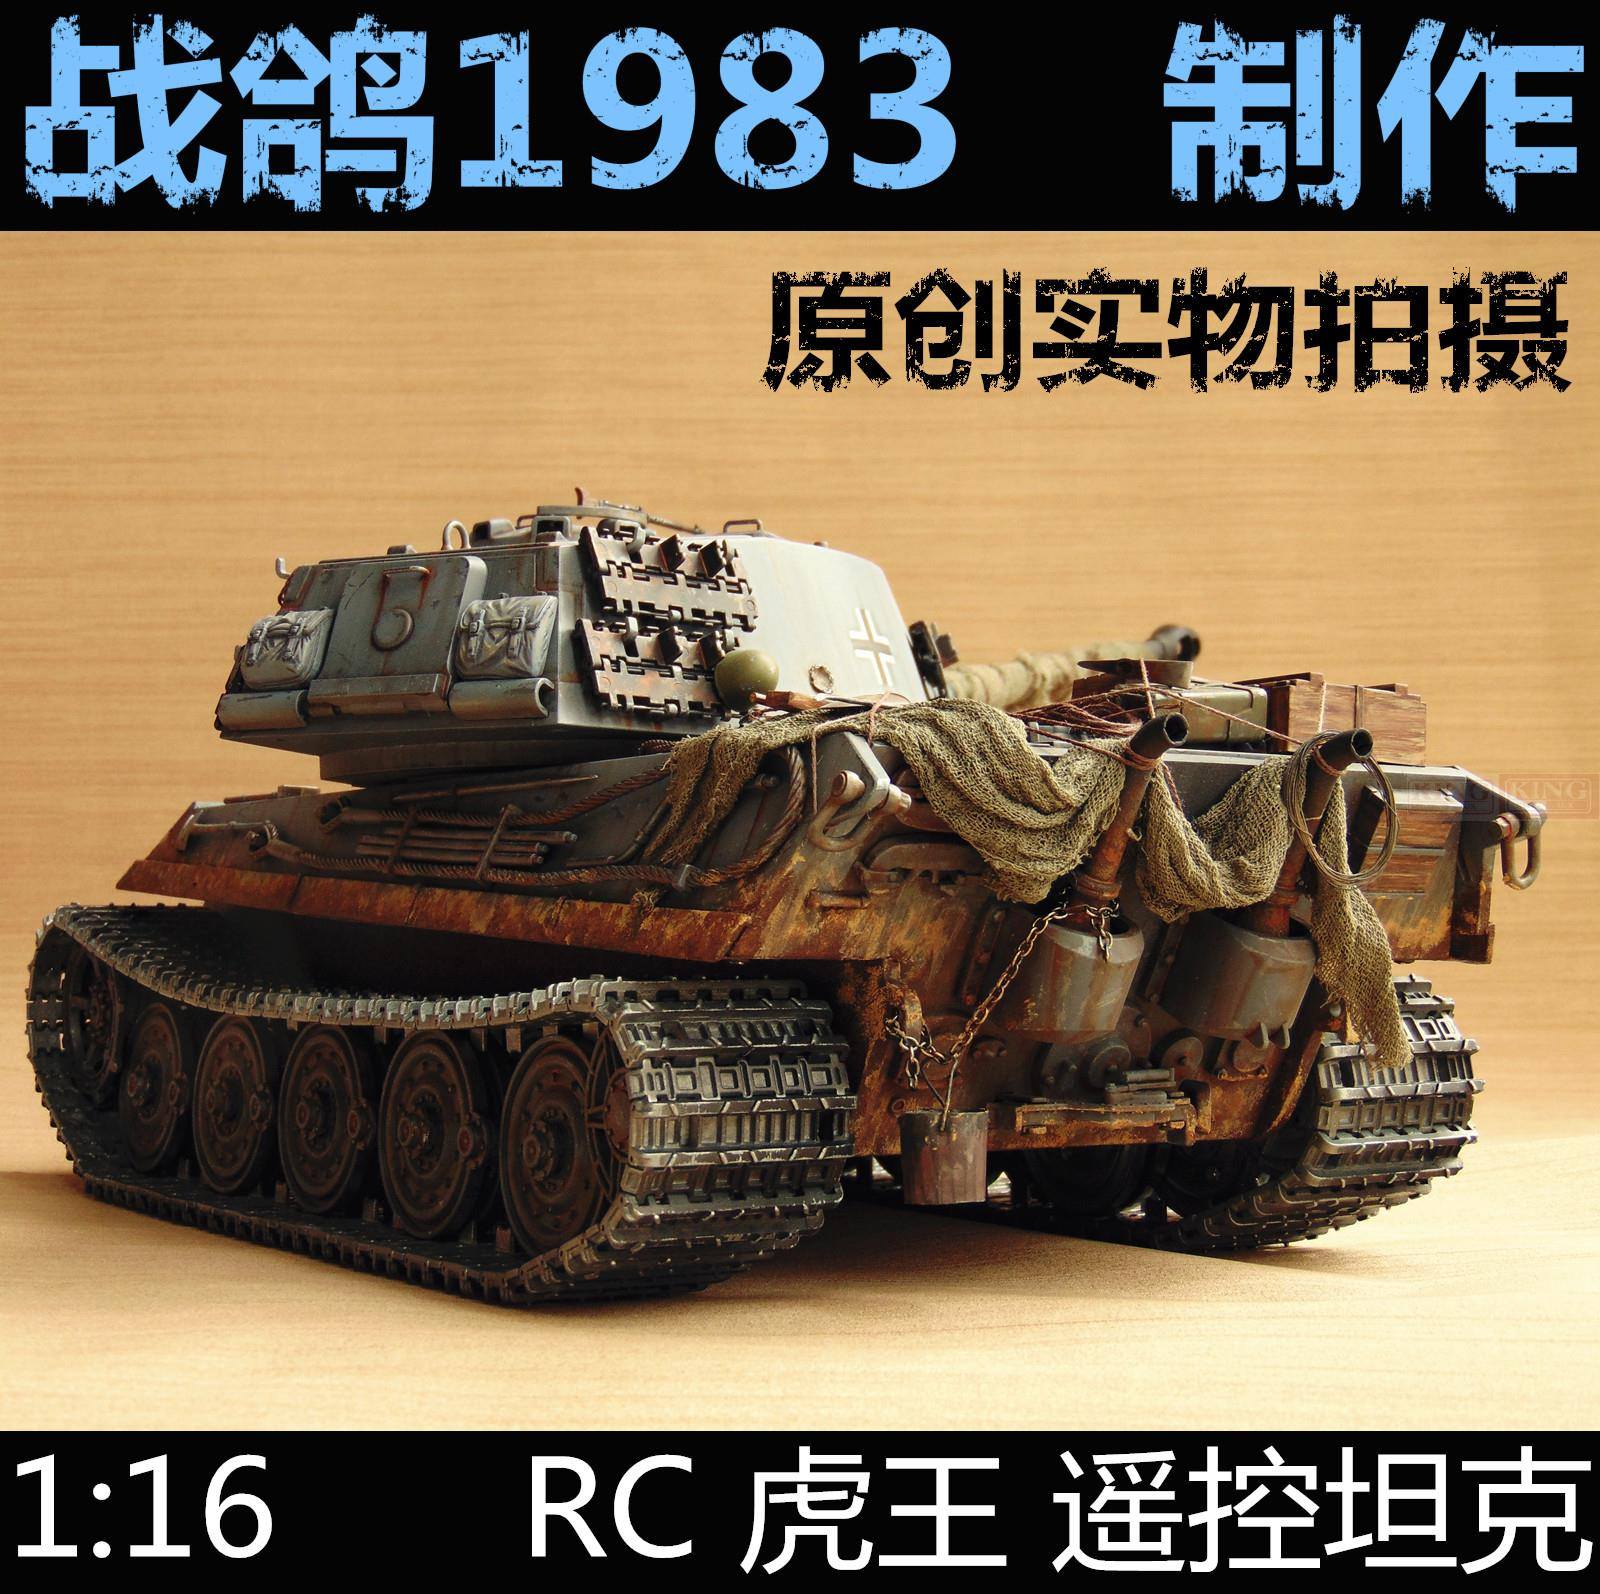 KNL HOBBY 1:16 RC King Tiger tank model remote control OEM heavy coating of paint to do the old upgrade knl hobby voyager model pe35418 m1a1 tusk1 ubilan